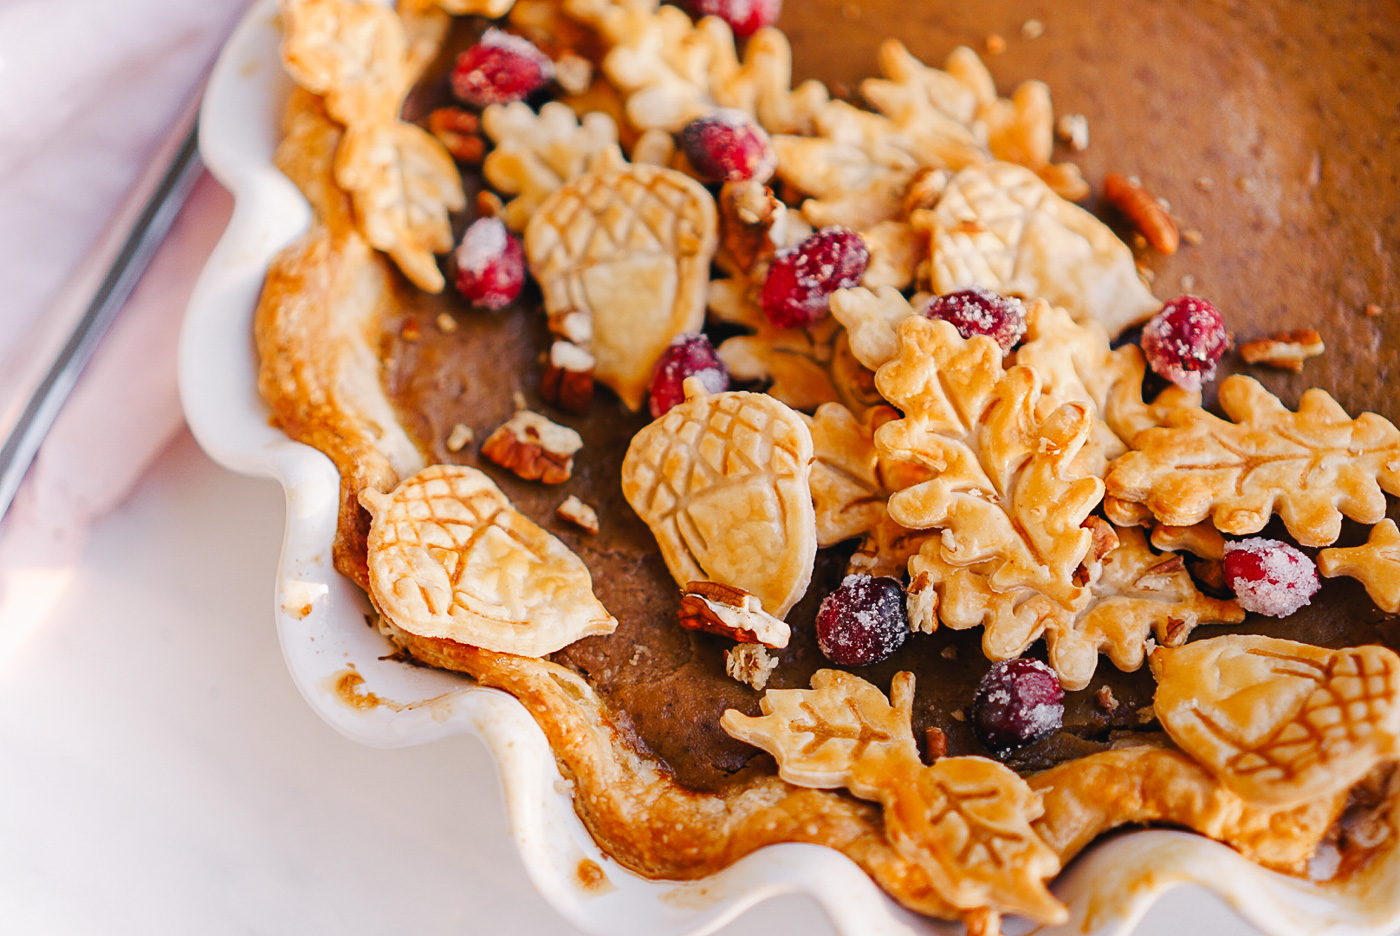 A recipe for maple pumpkin pie by Lauren Cermak of the Southern Lifestyle Blog, Going For Grace. This pie is the perfect addition to a Thanksgiving spread!